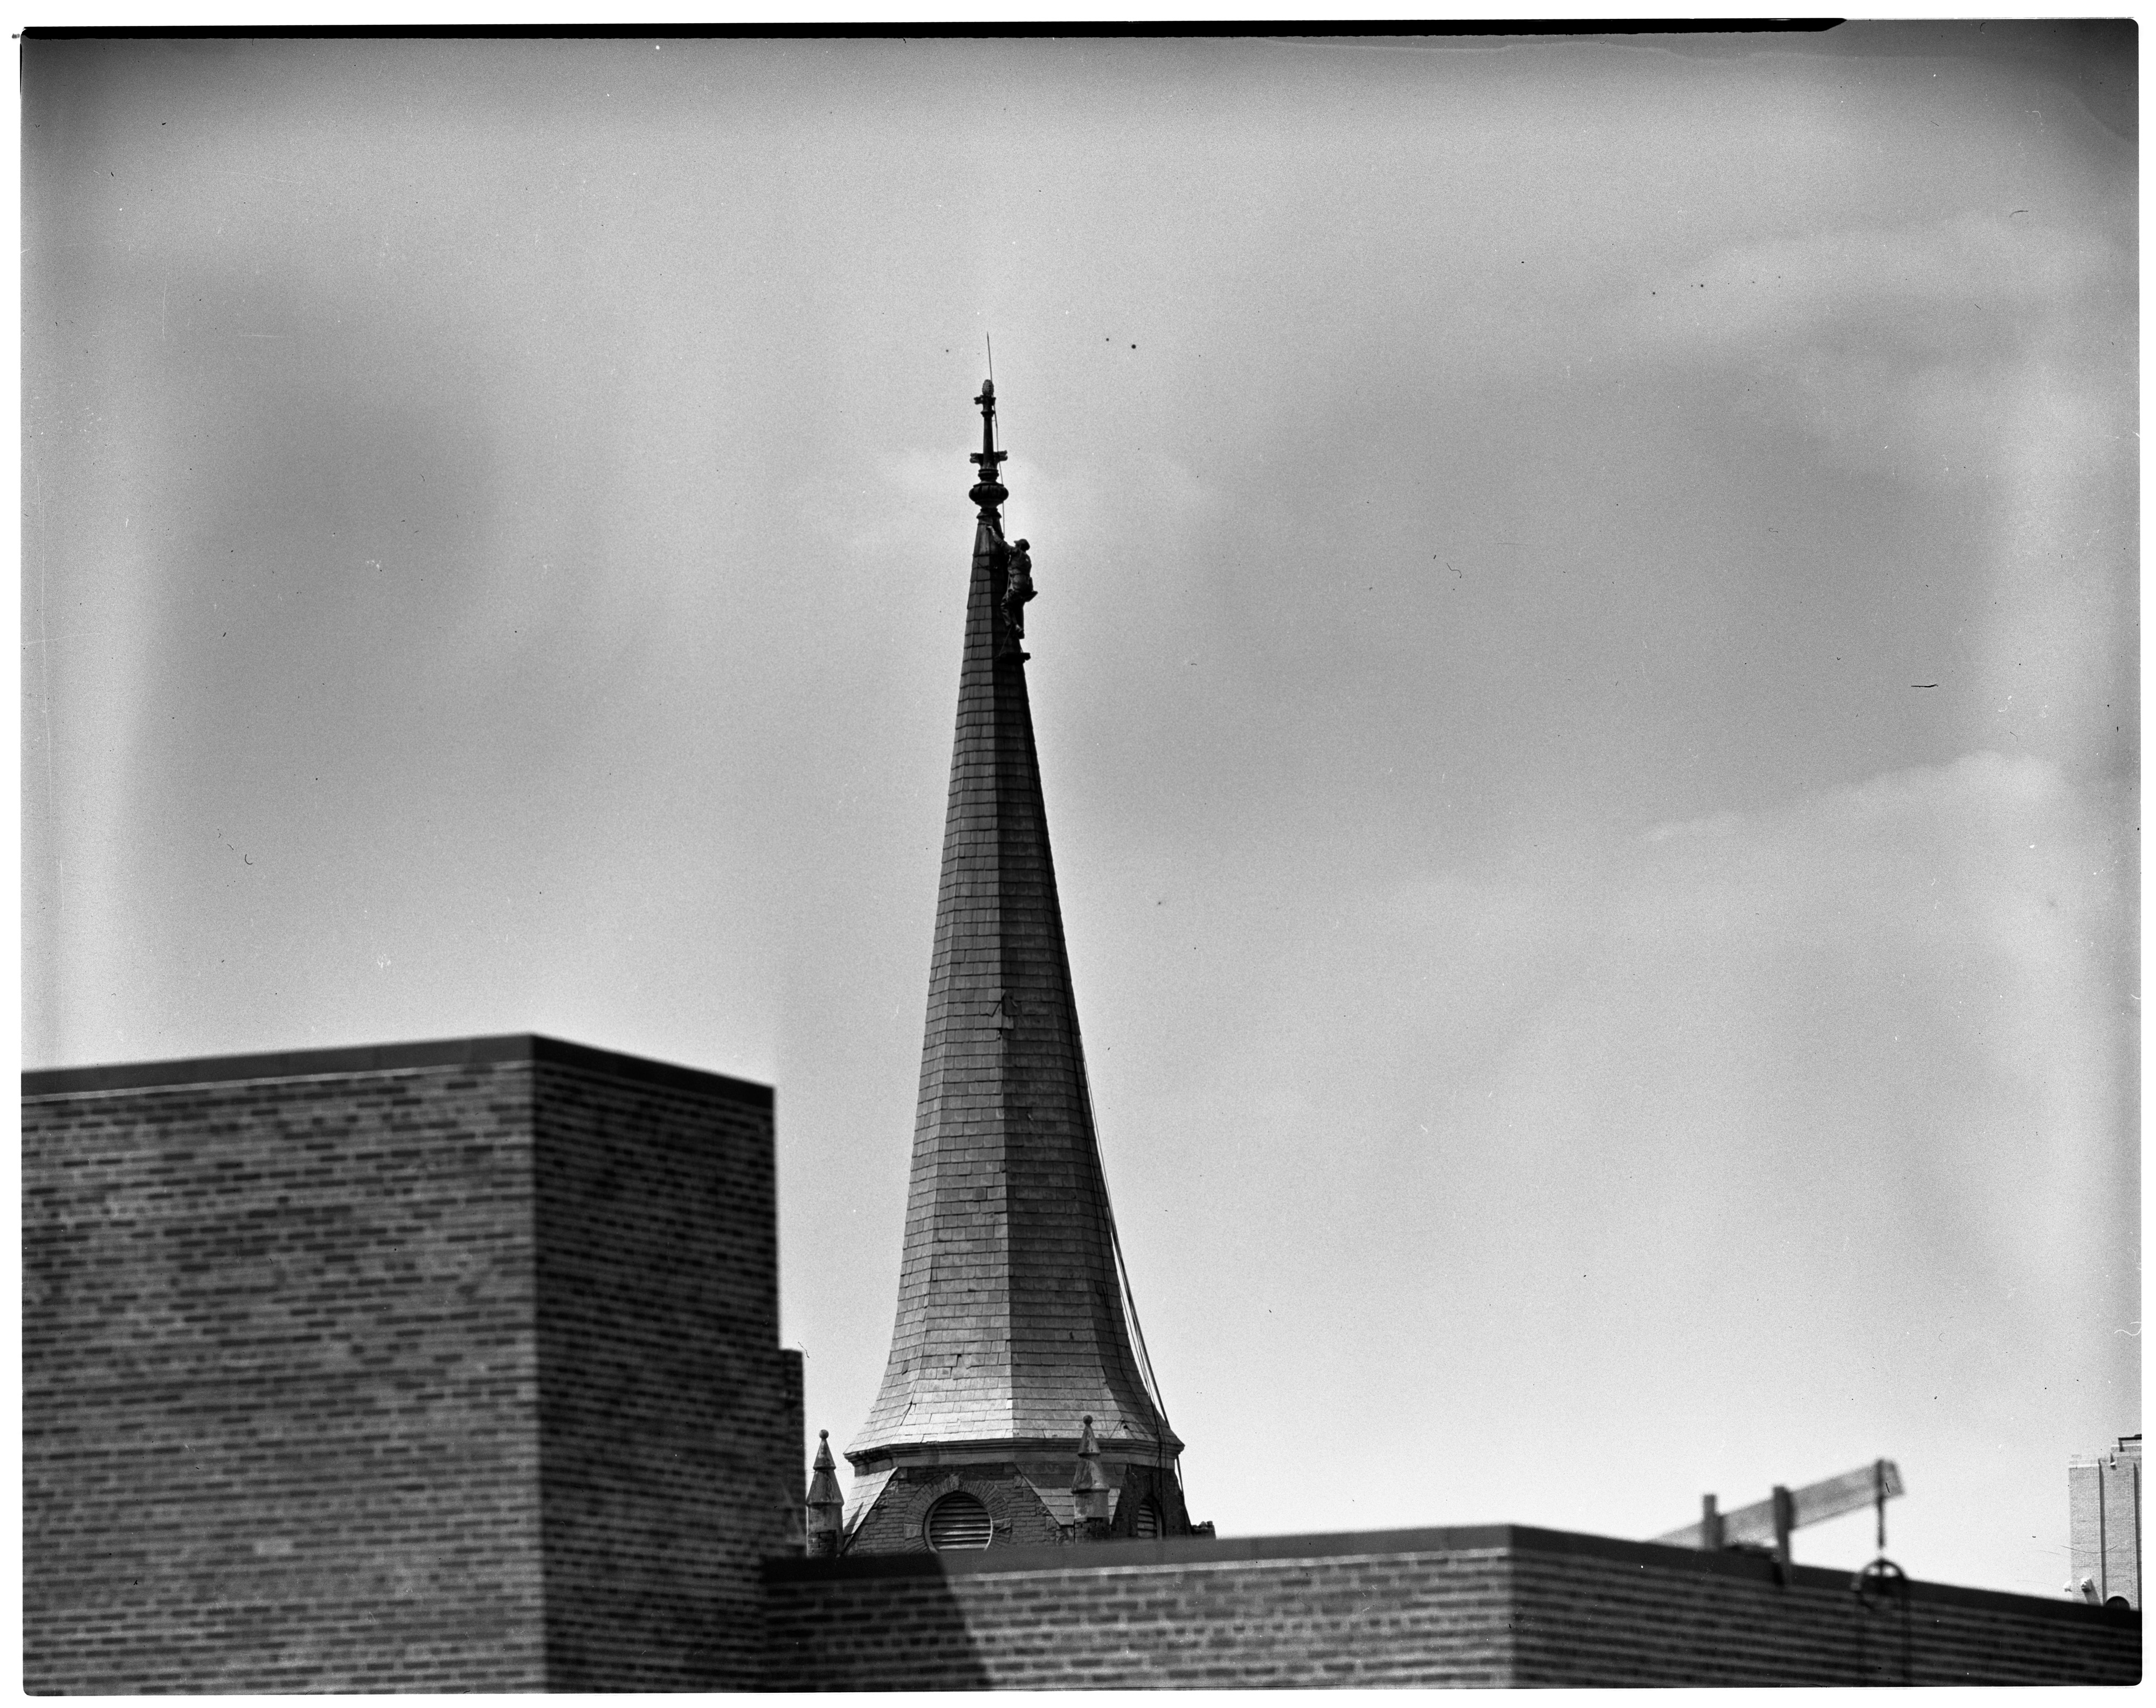 Steeplejack Climbs Zion Lutheran Church Steeple, August 1936 image